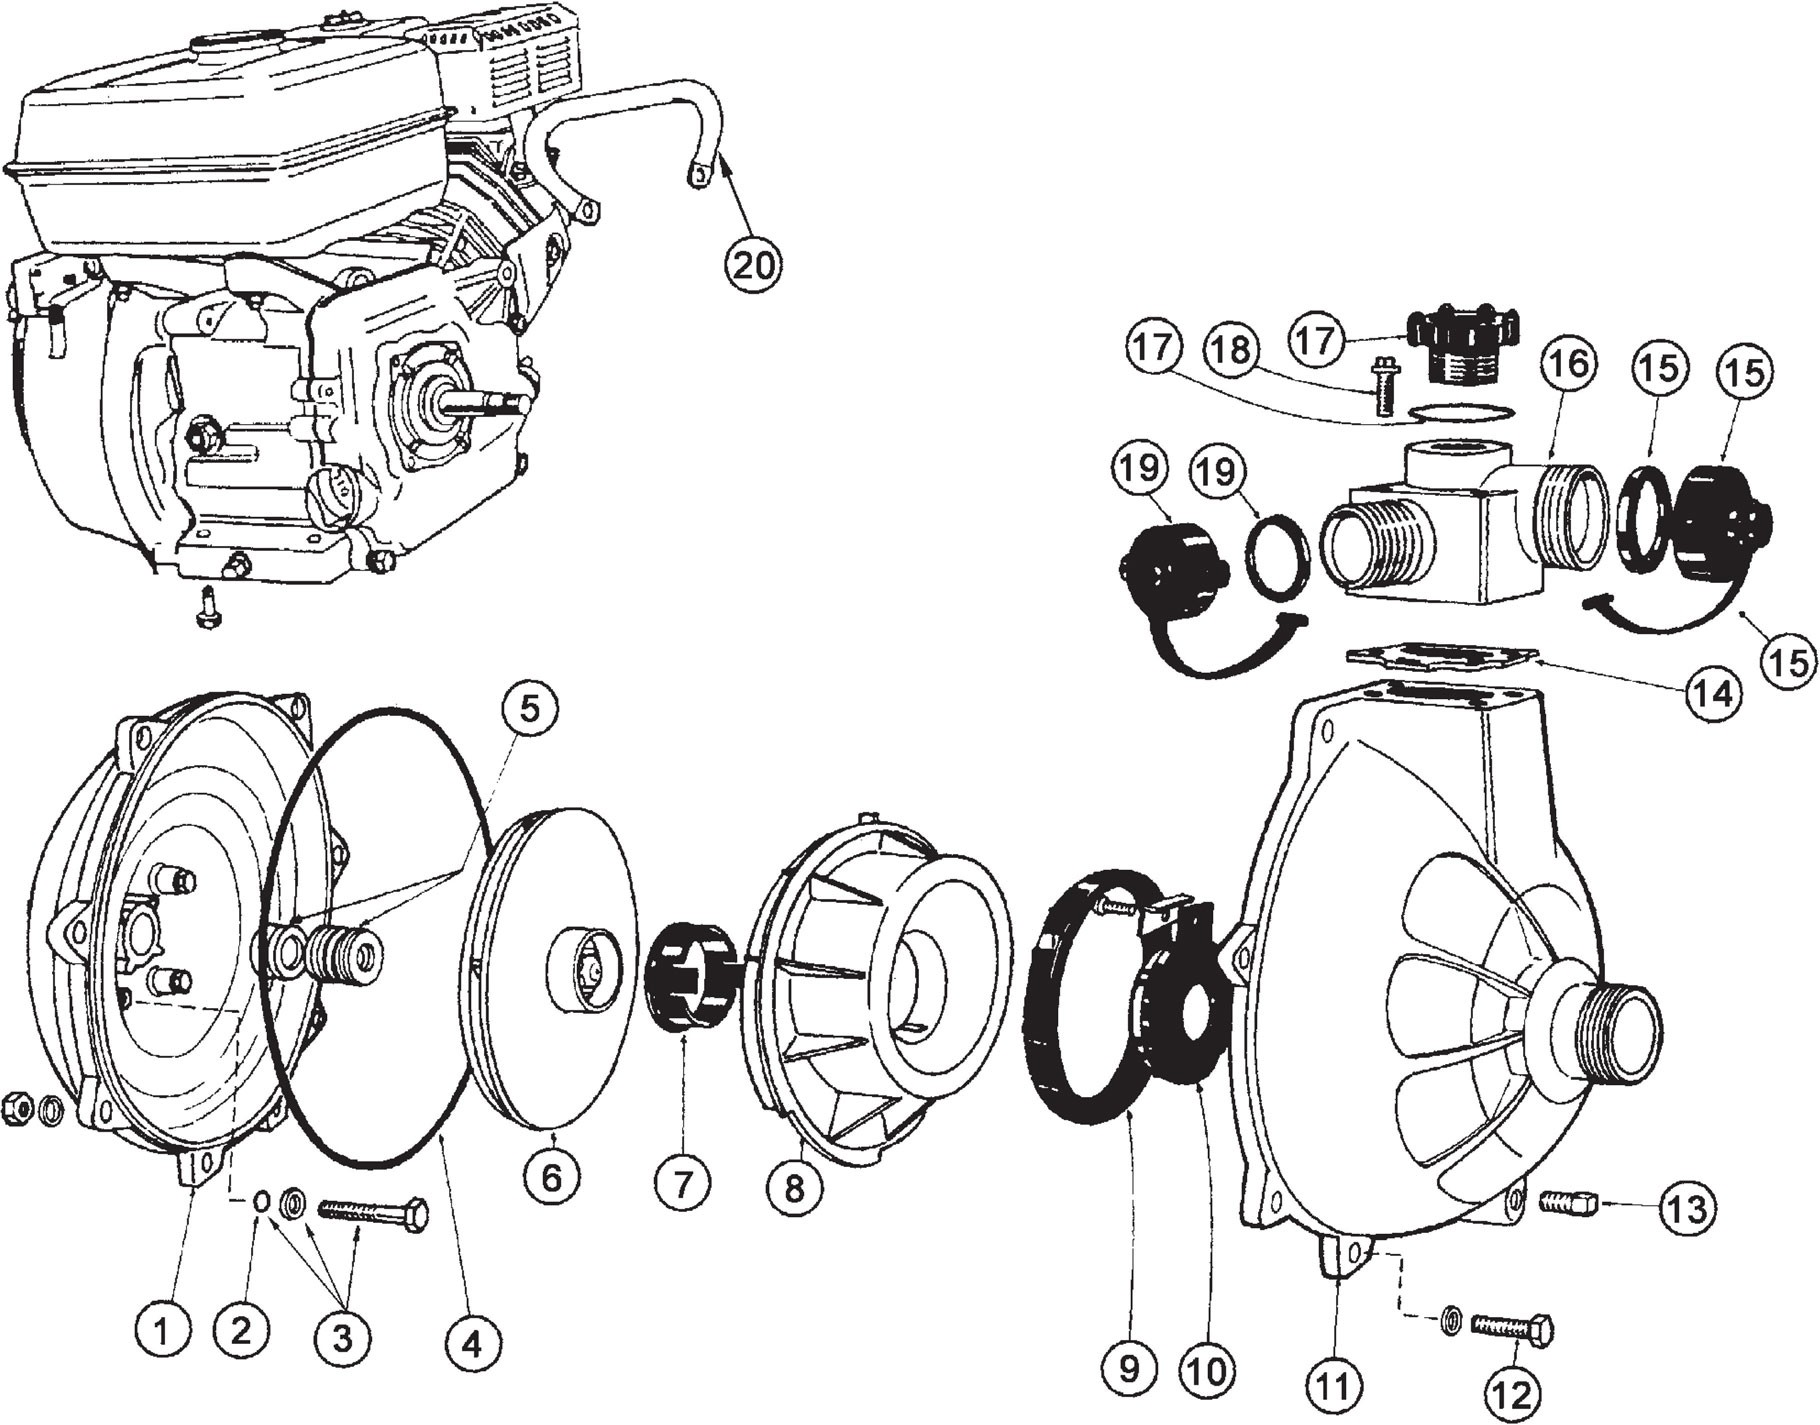 honda gc160 pump parts diagram  u2022 wiring diagram for free